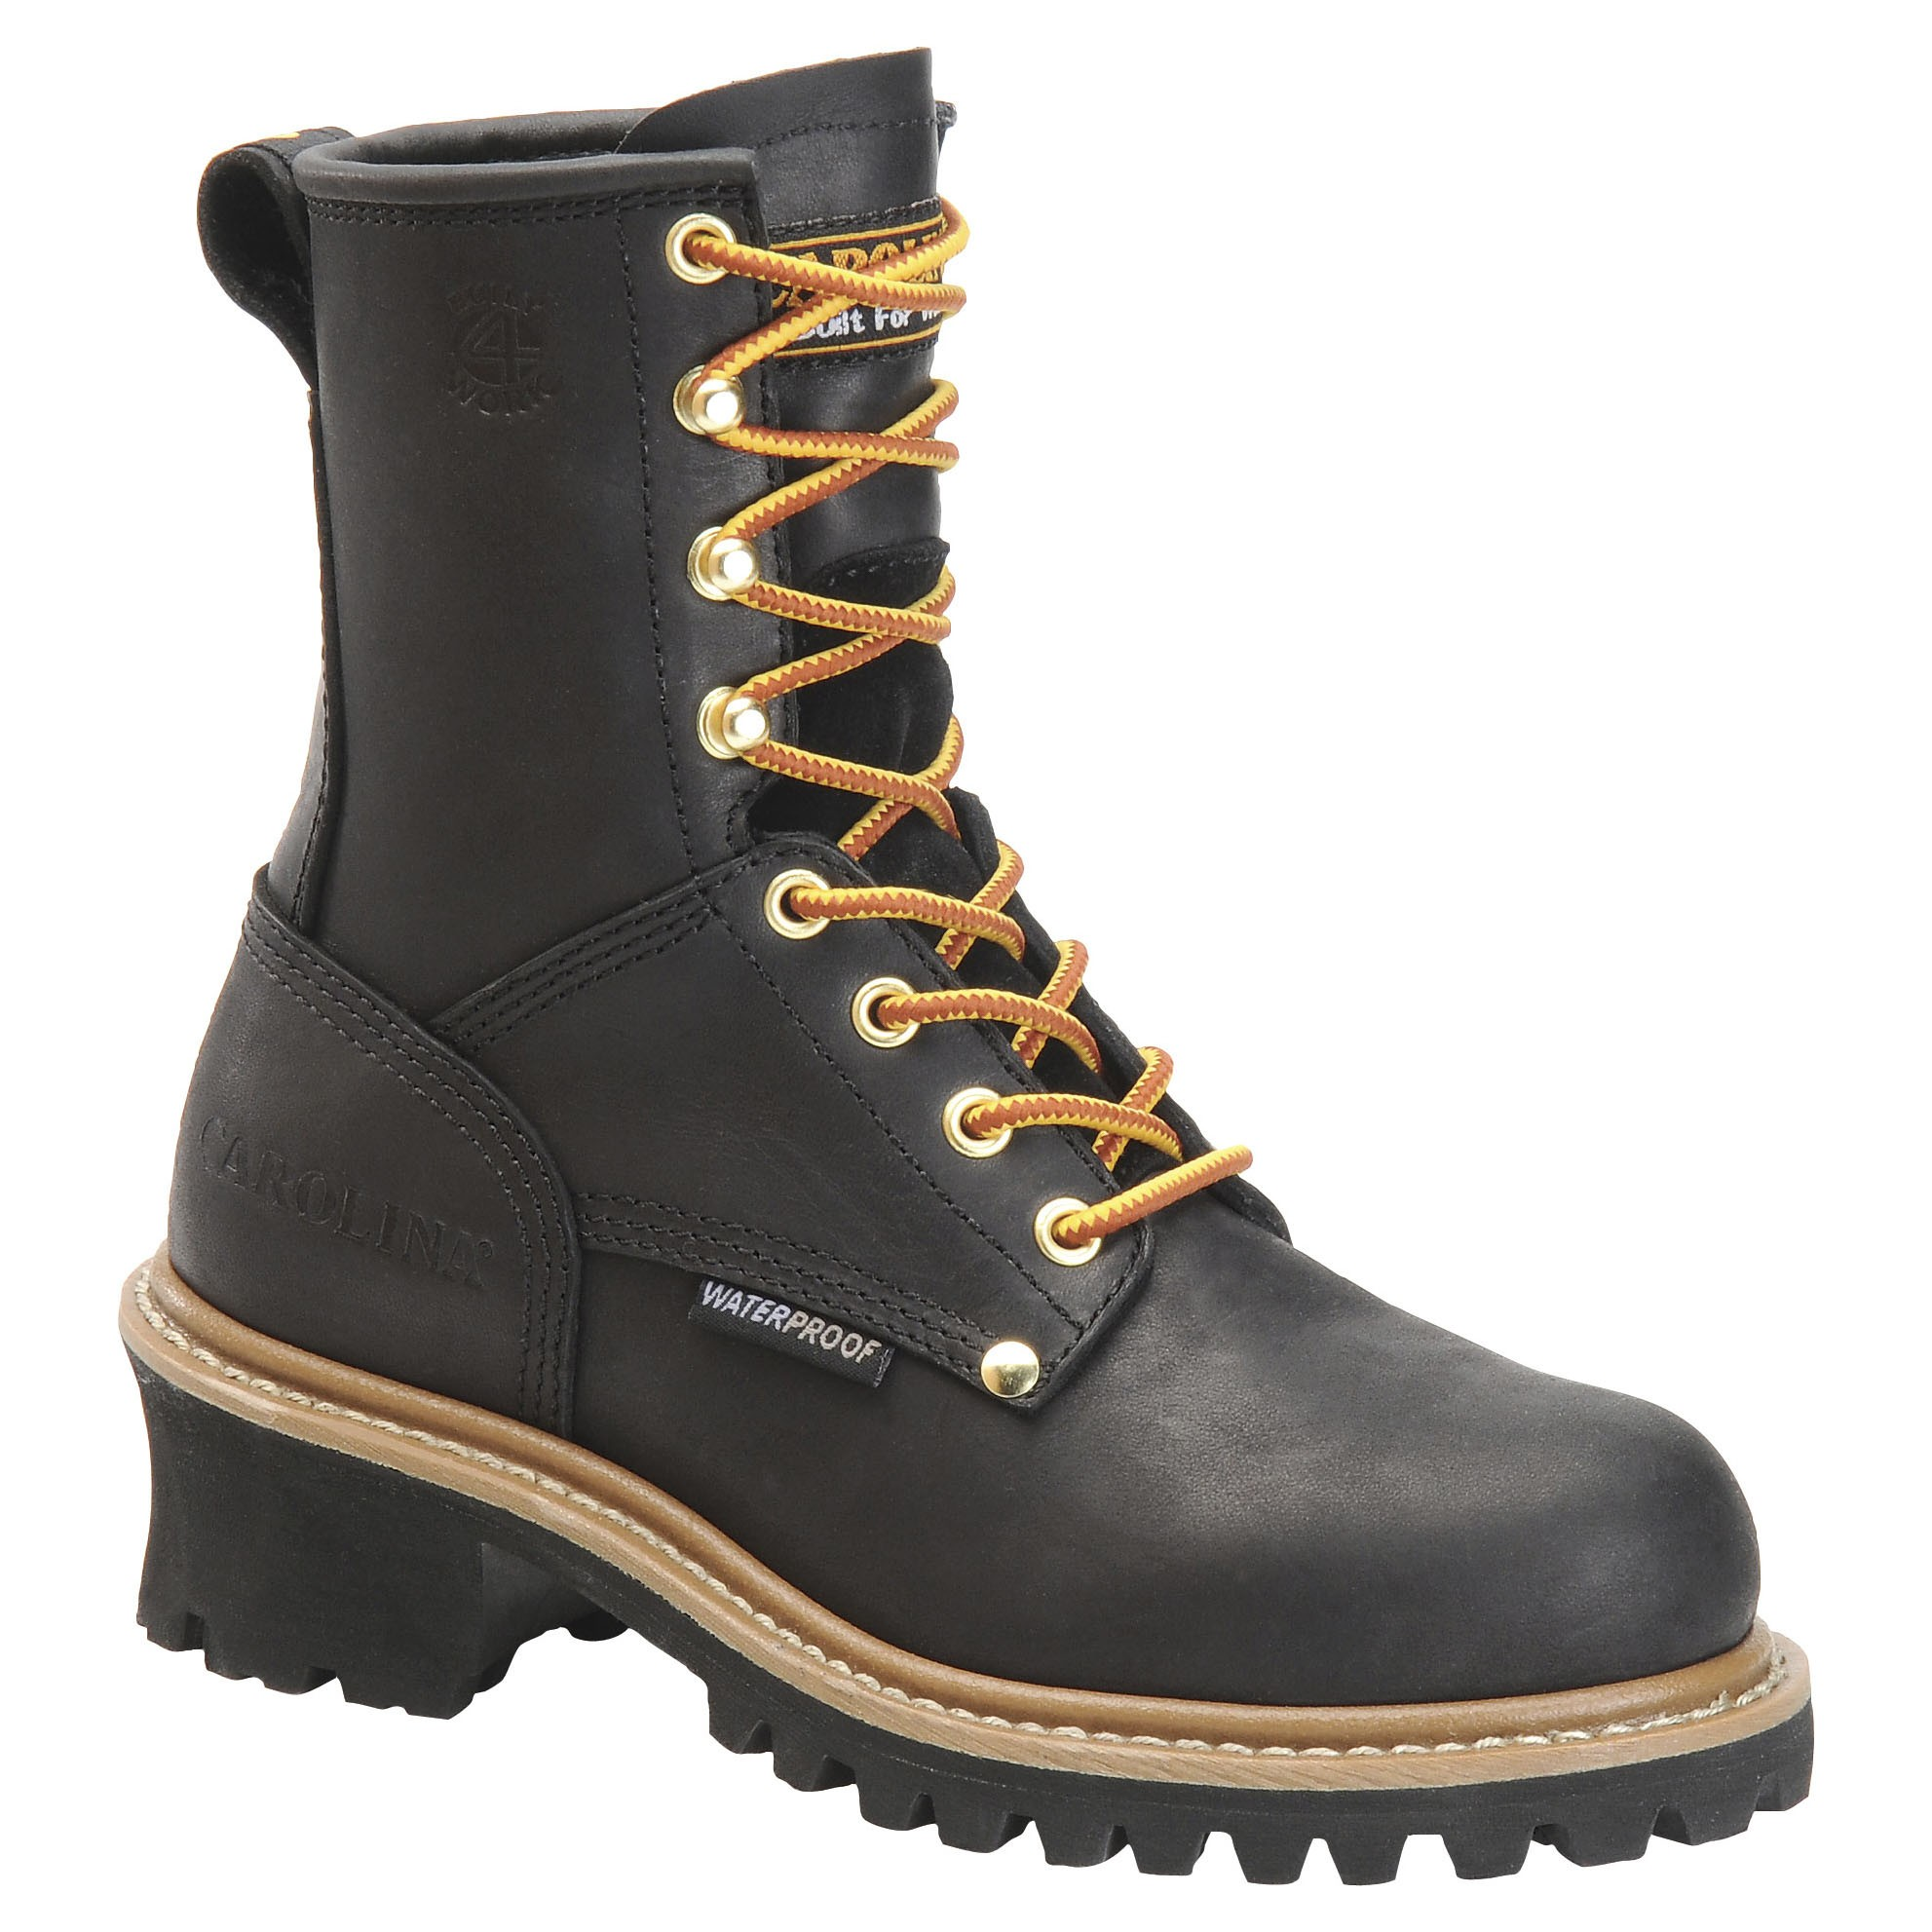 A brief detail about steel toe shoes for women